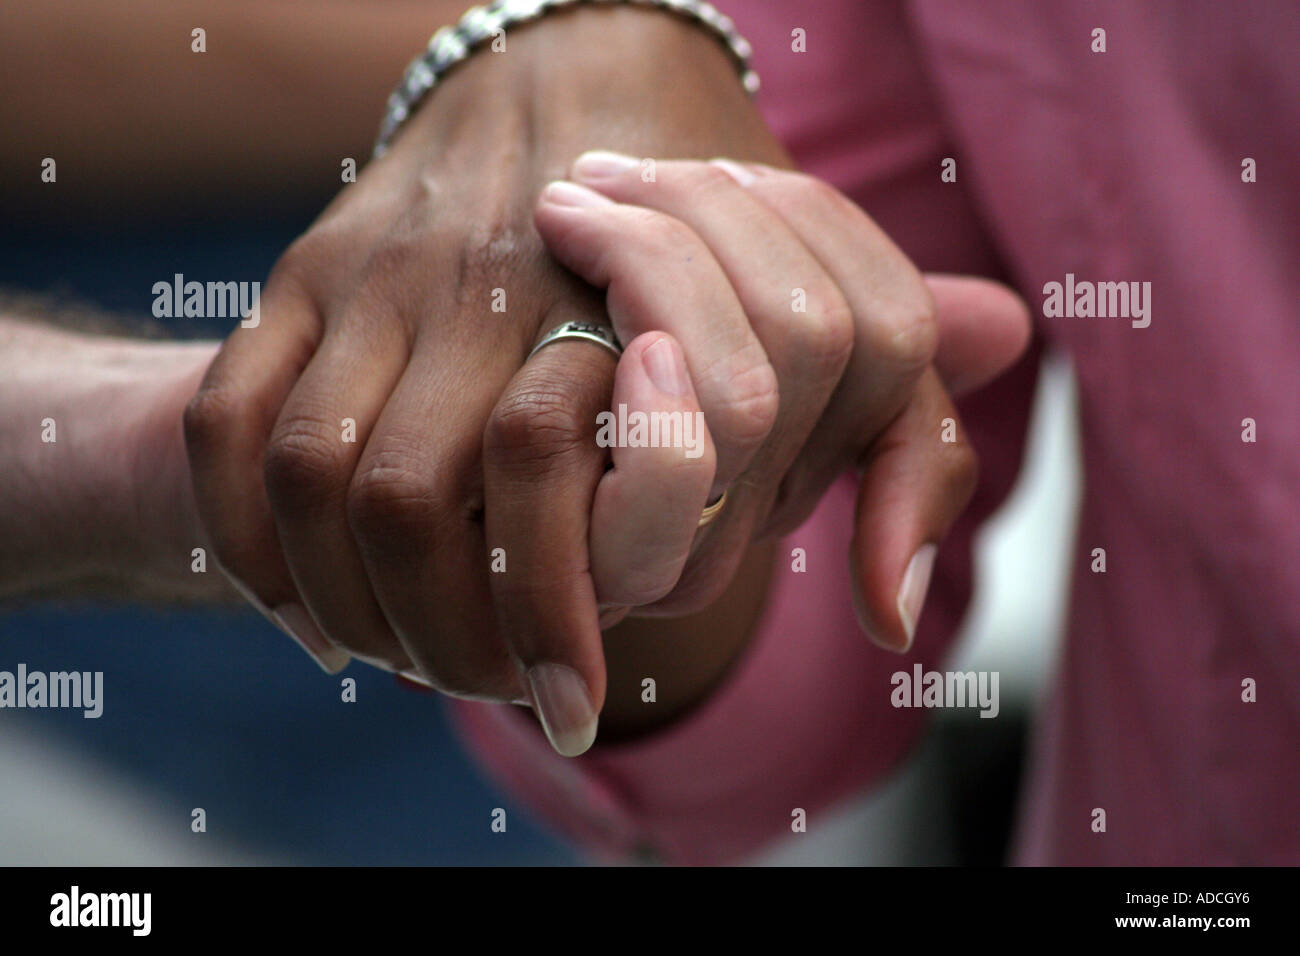 Interracial hand holding